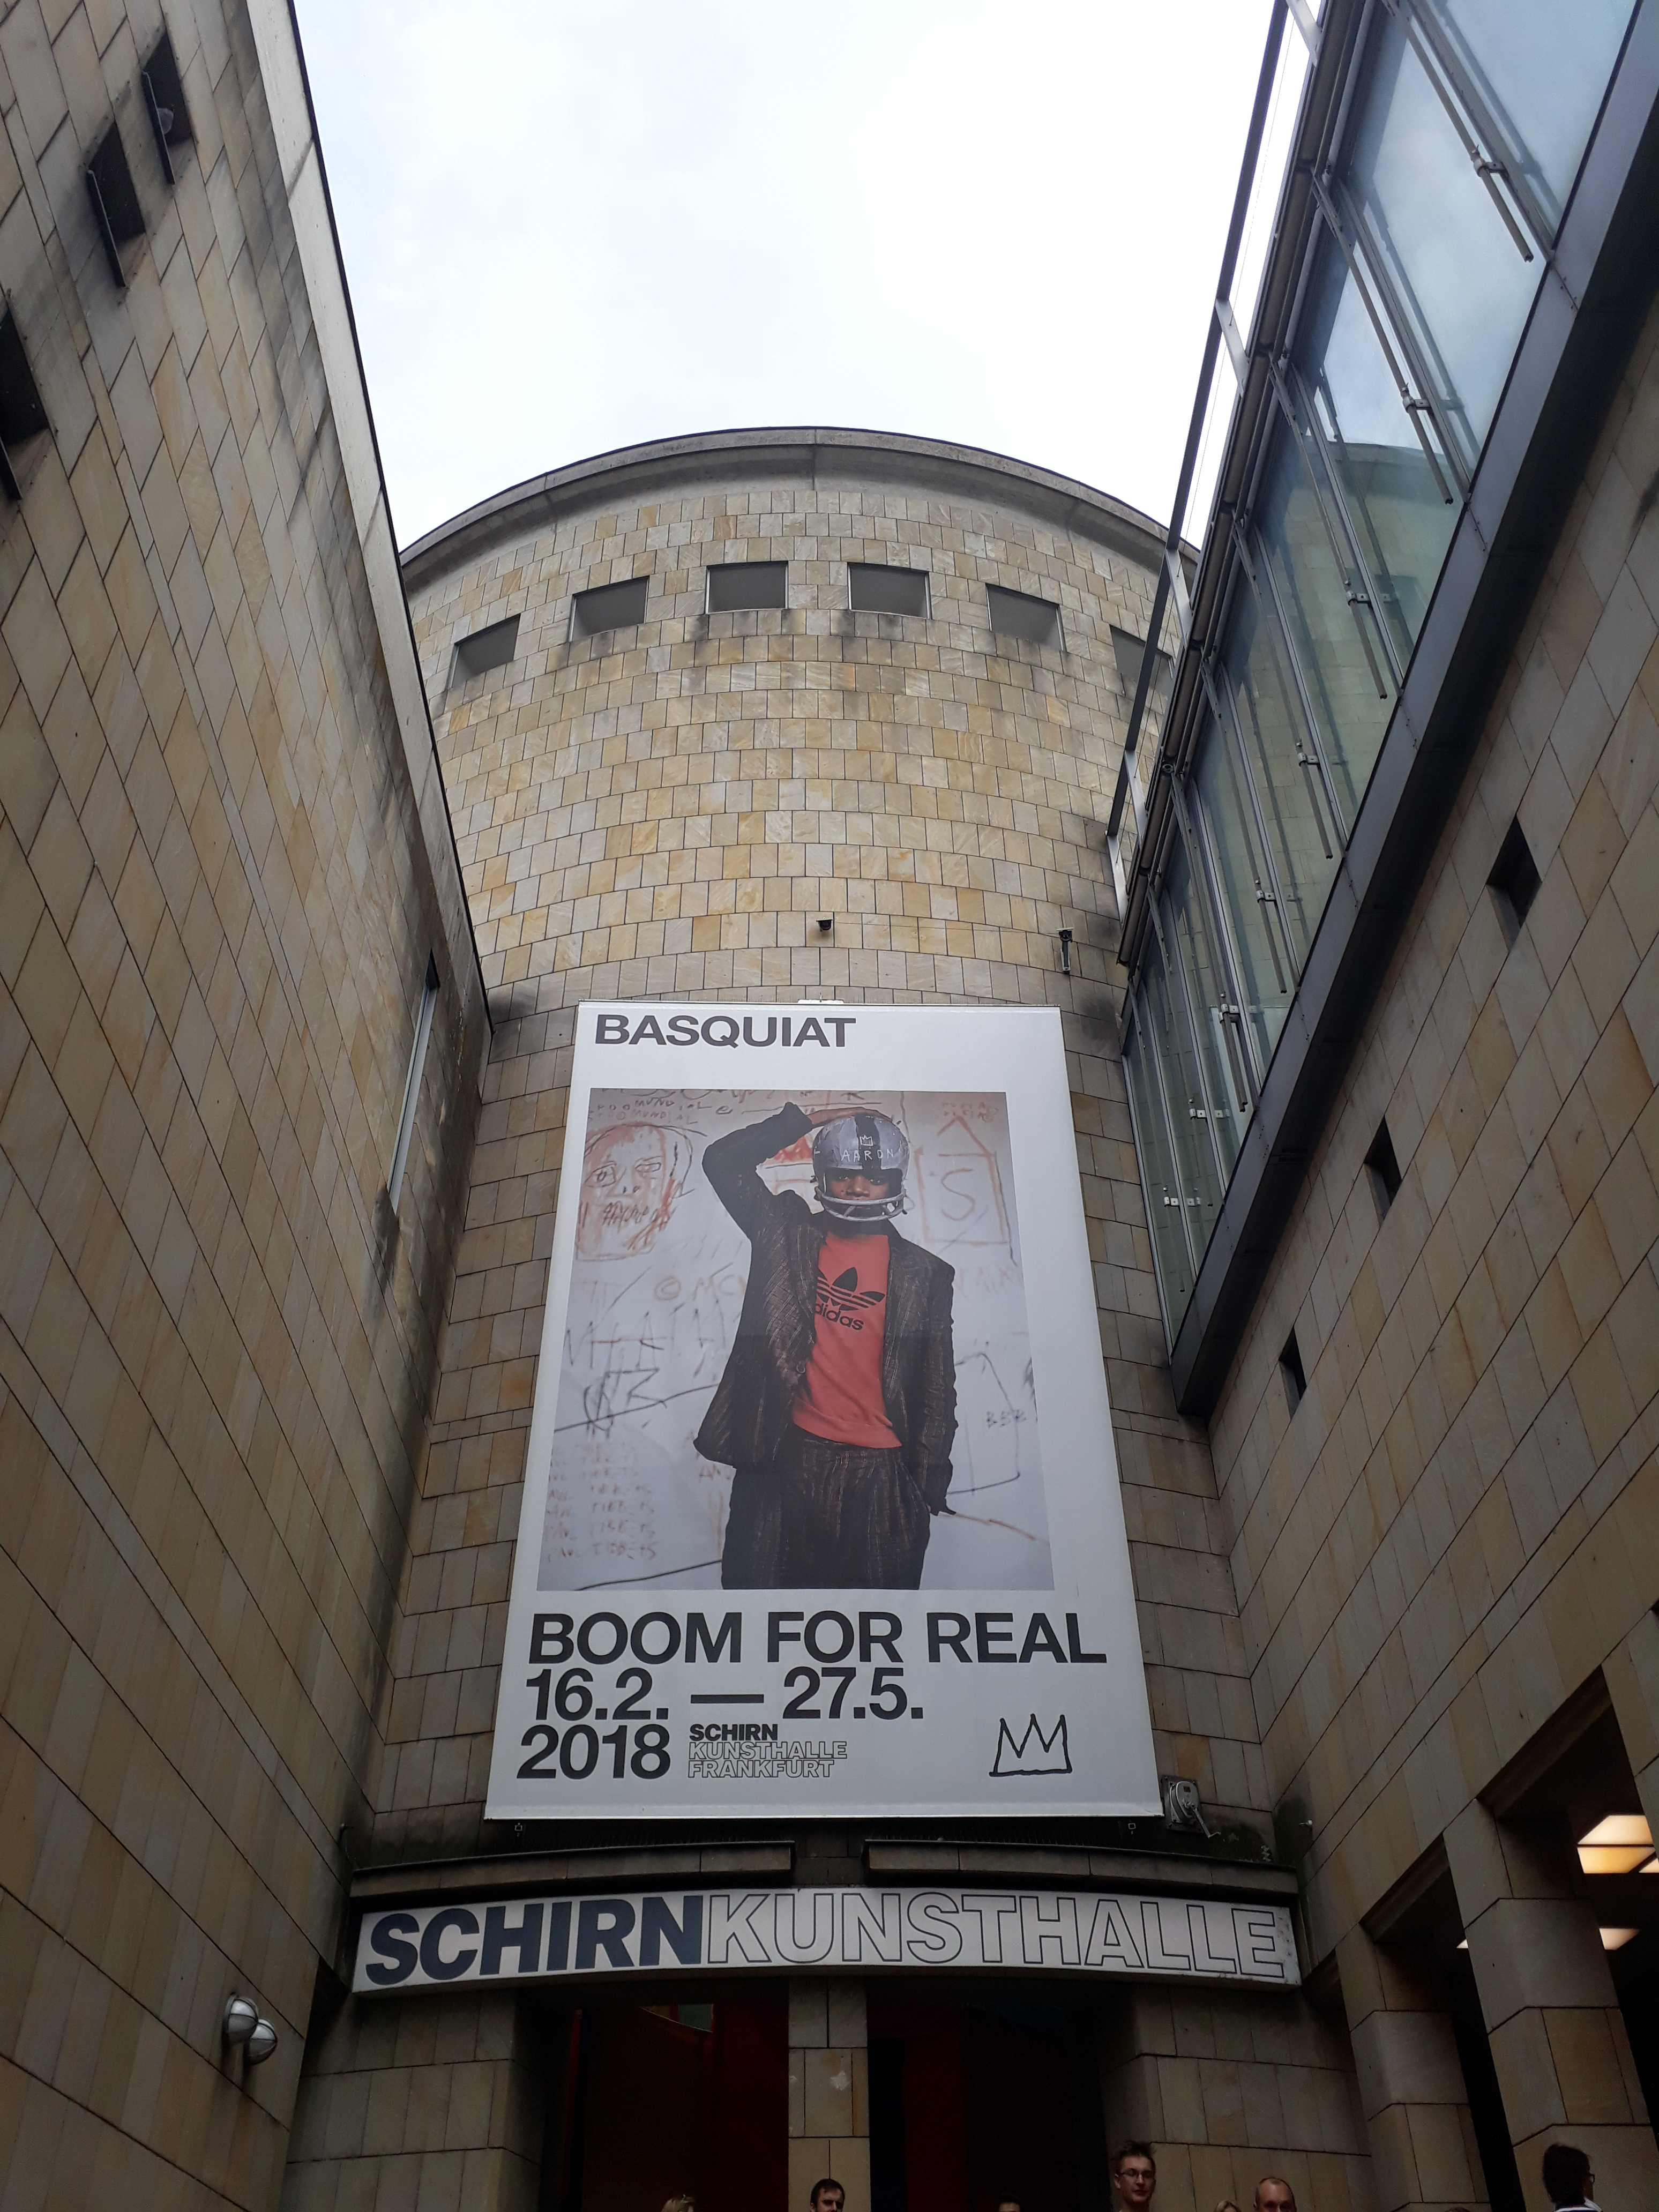 BOOM FOR REAL - Die grandiose Ausstellung in der Schirn Kunsthalle in Frankfurt am Main